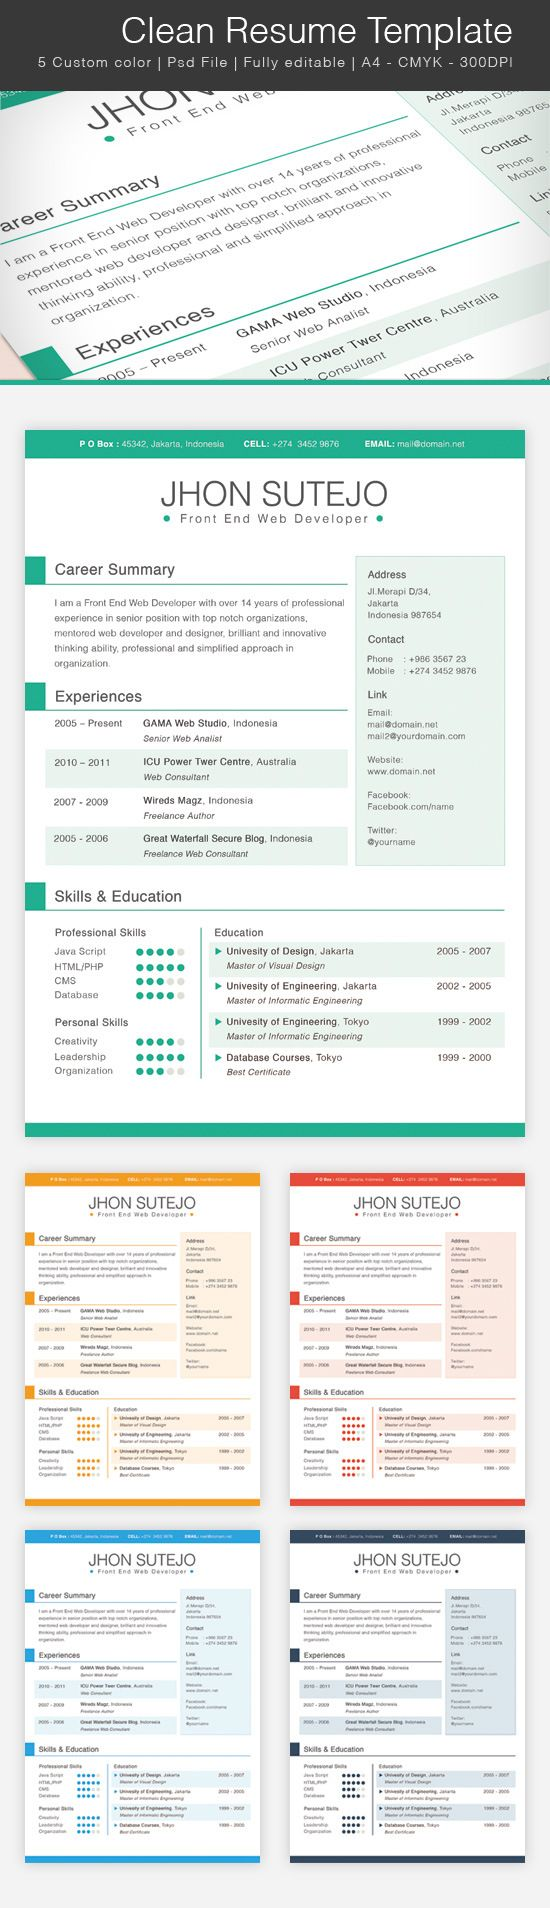 Pin By Deepa N On Recipes To Cook Pinterest Resume Resume